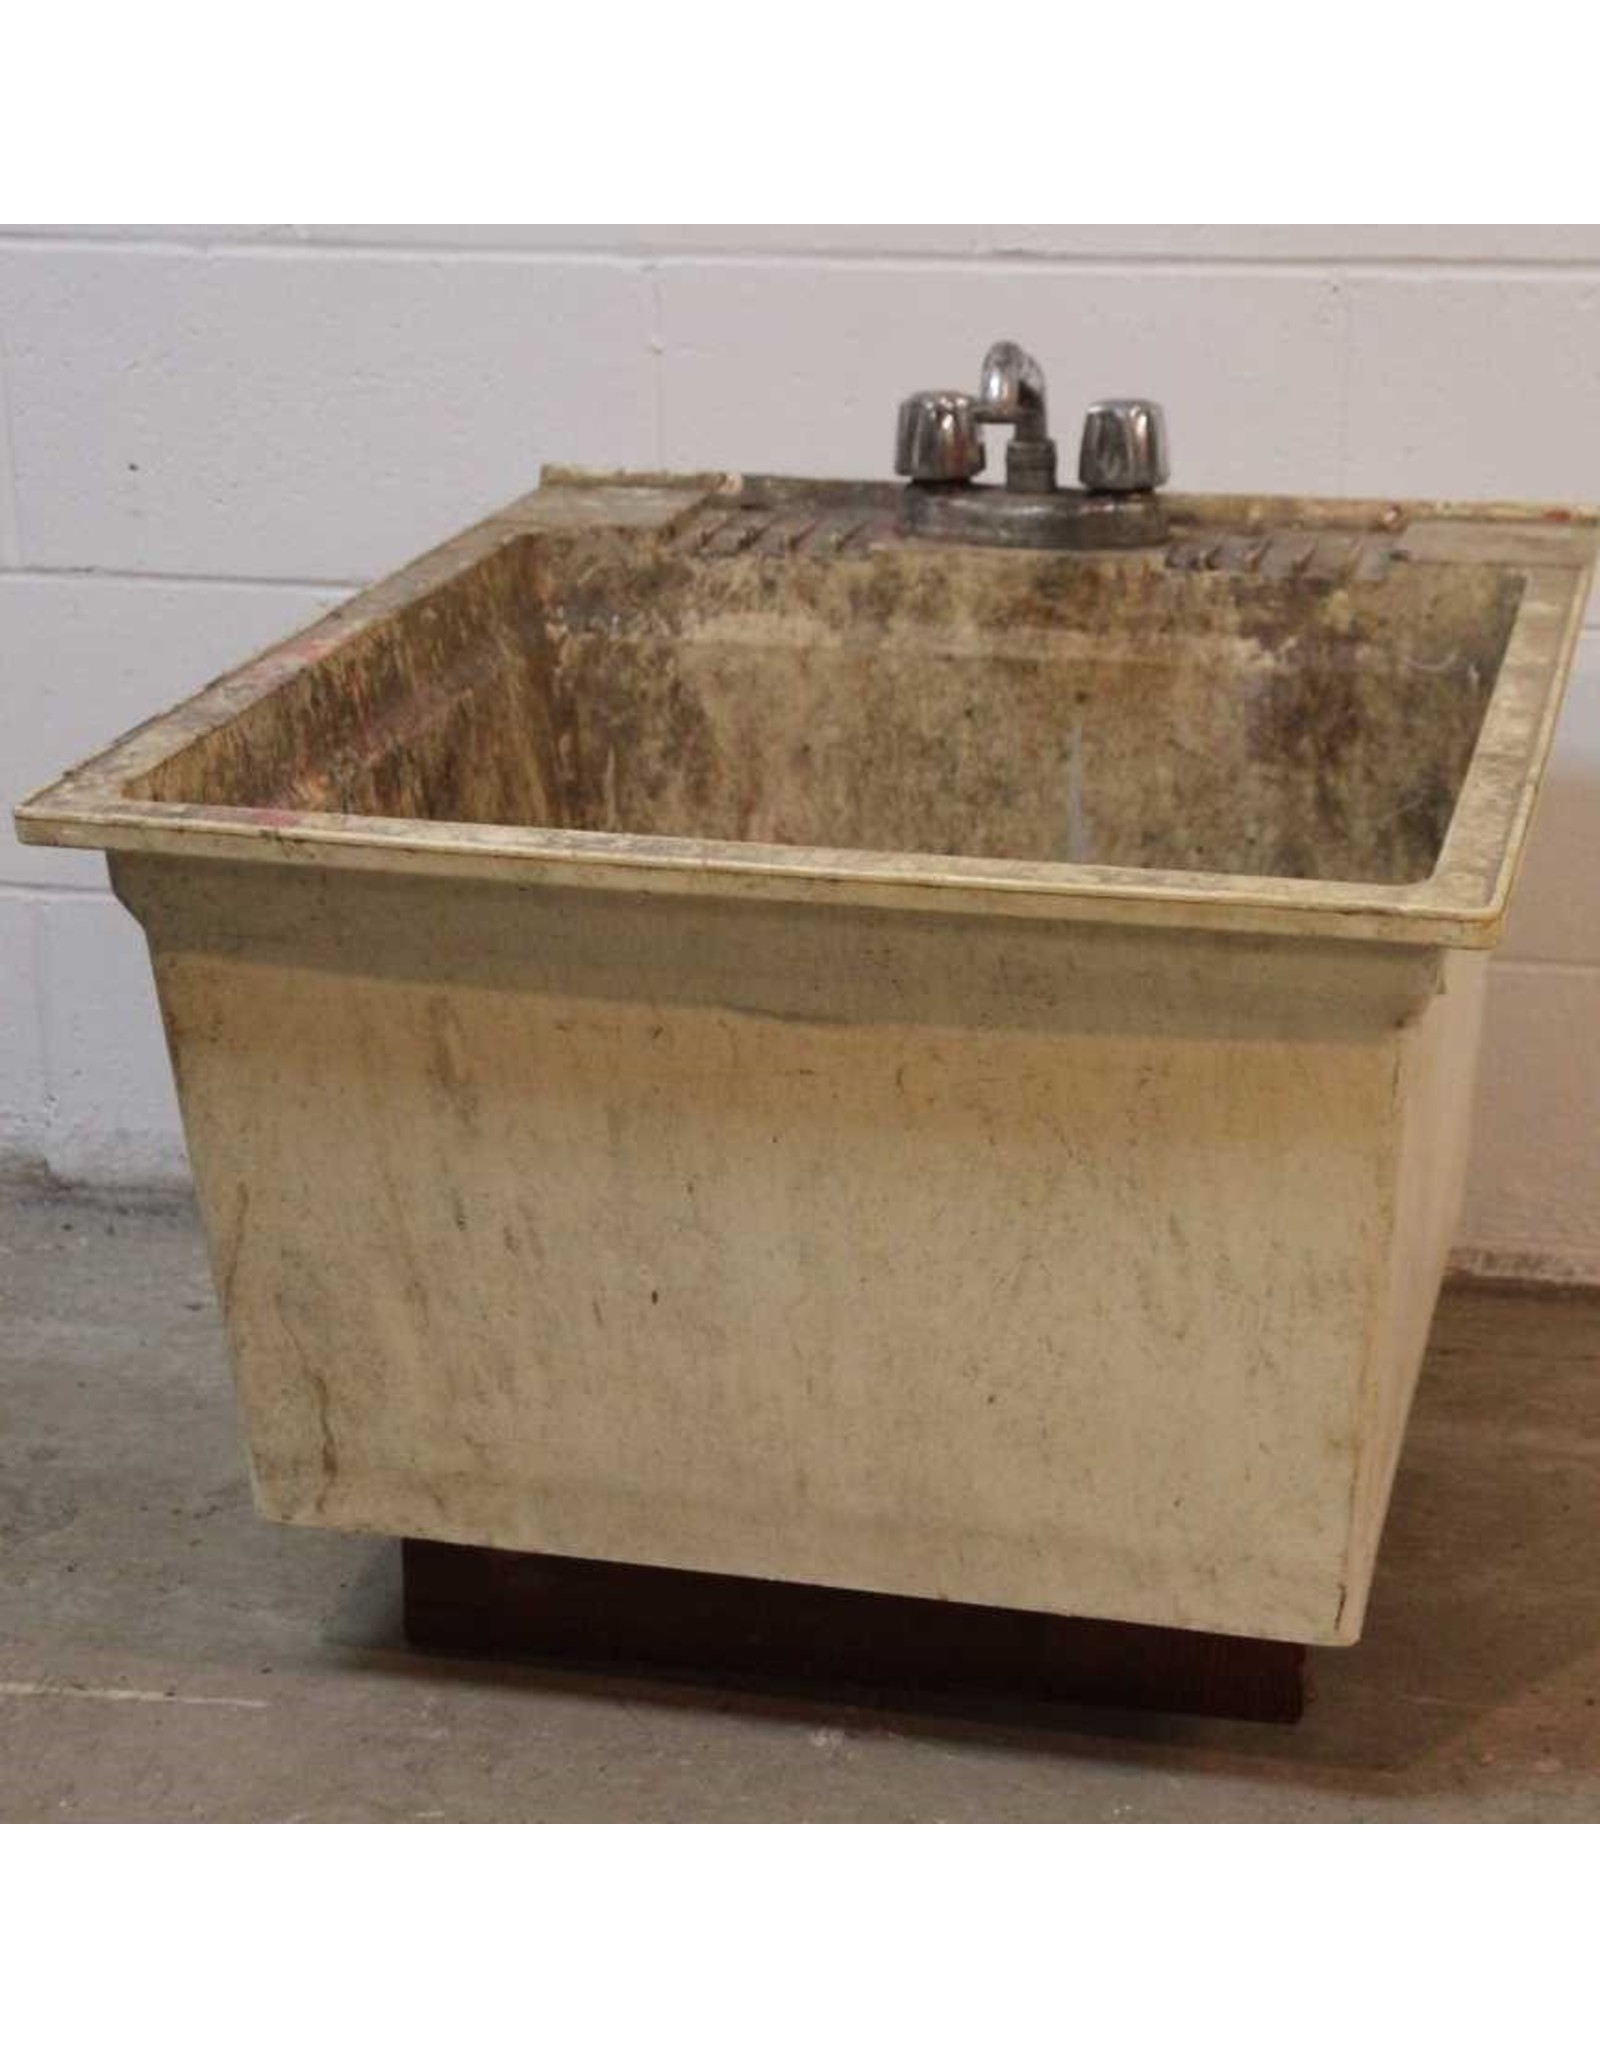 Sink - plastic laundry sink, rough inside but sound